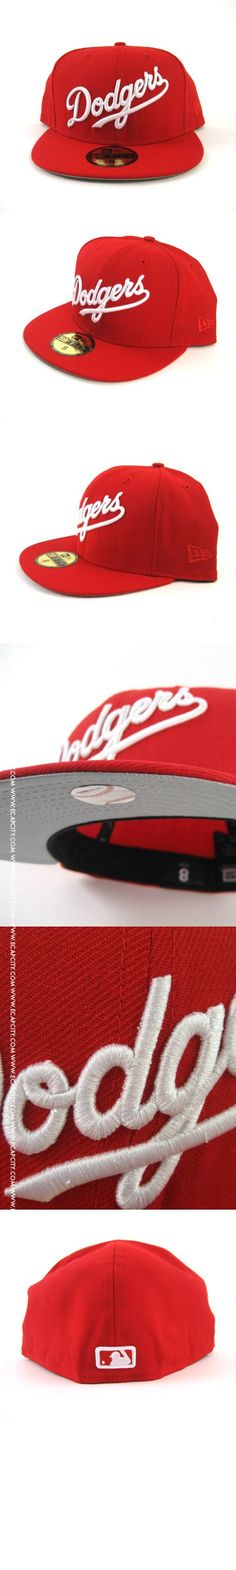 77c29be1 Los Angeles Dodgers New Era Fitted Hats - (Angels Color Way) – Custom  Fitteds